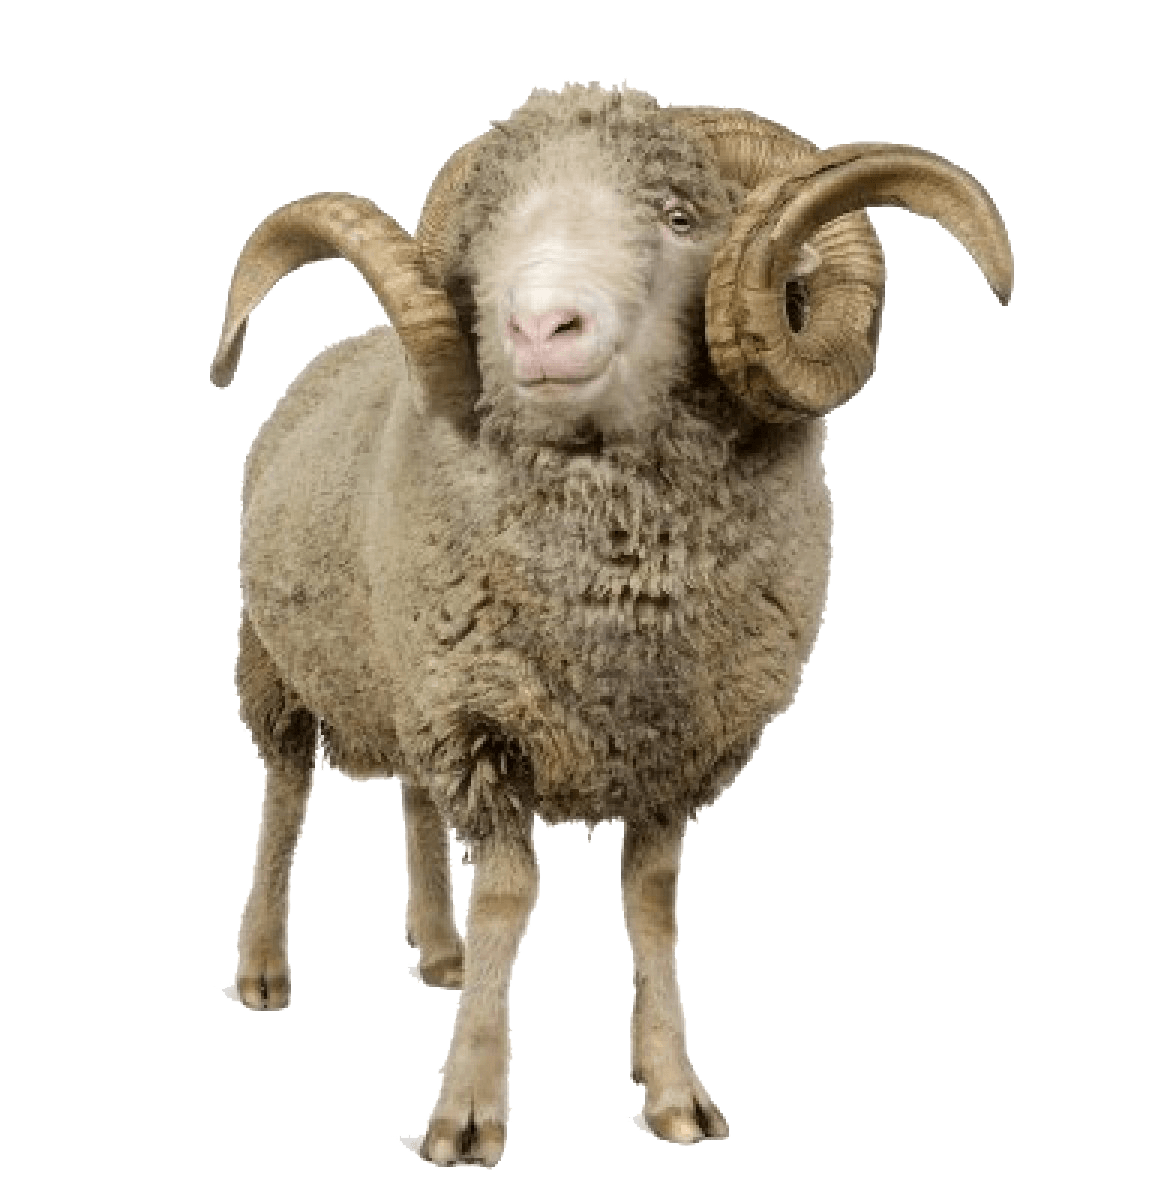 Sheep with horns transparent. Horn clipart mother goat